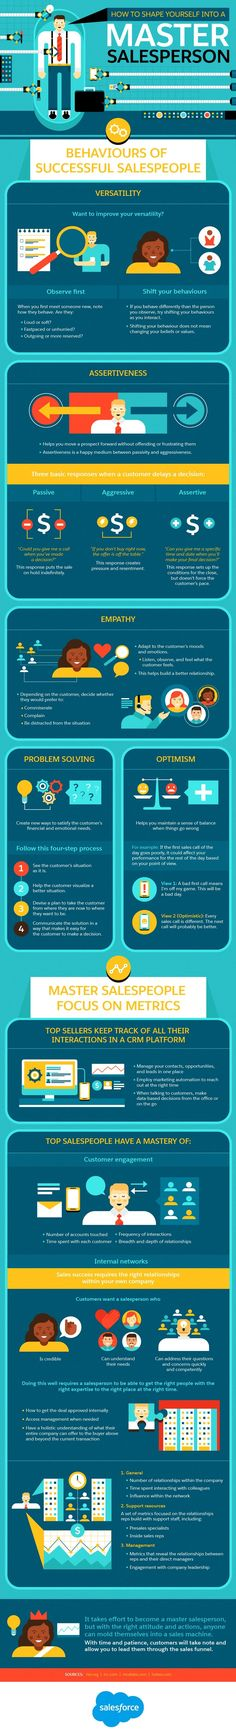 How to Shape Yourself into a Master Salesperson #Infographic #HowTo #Sales